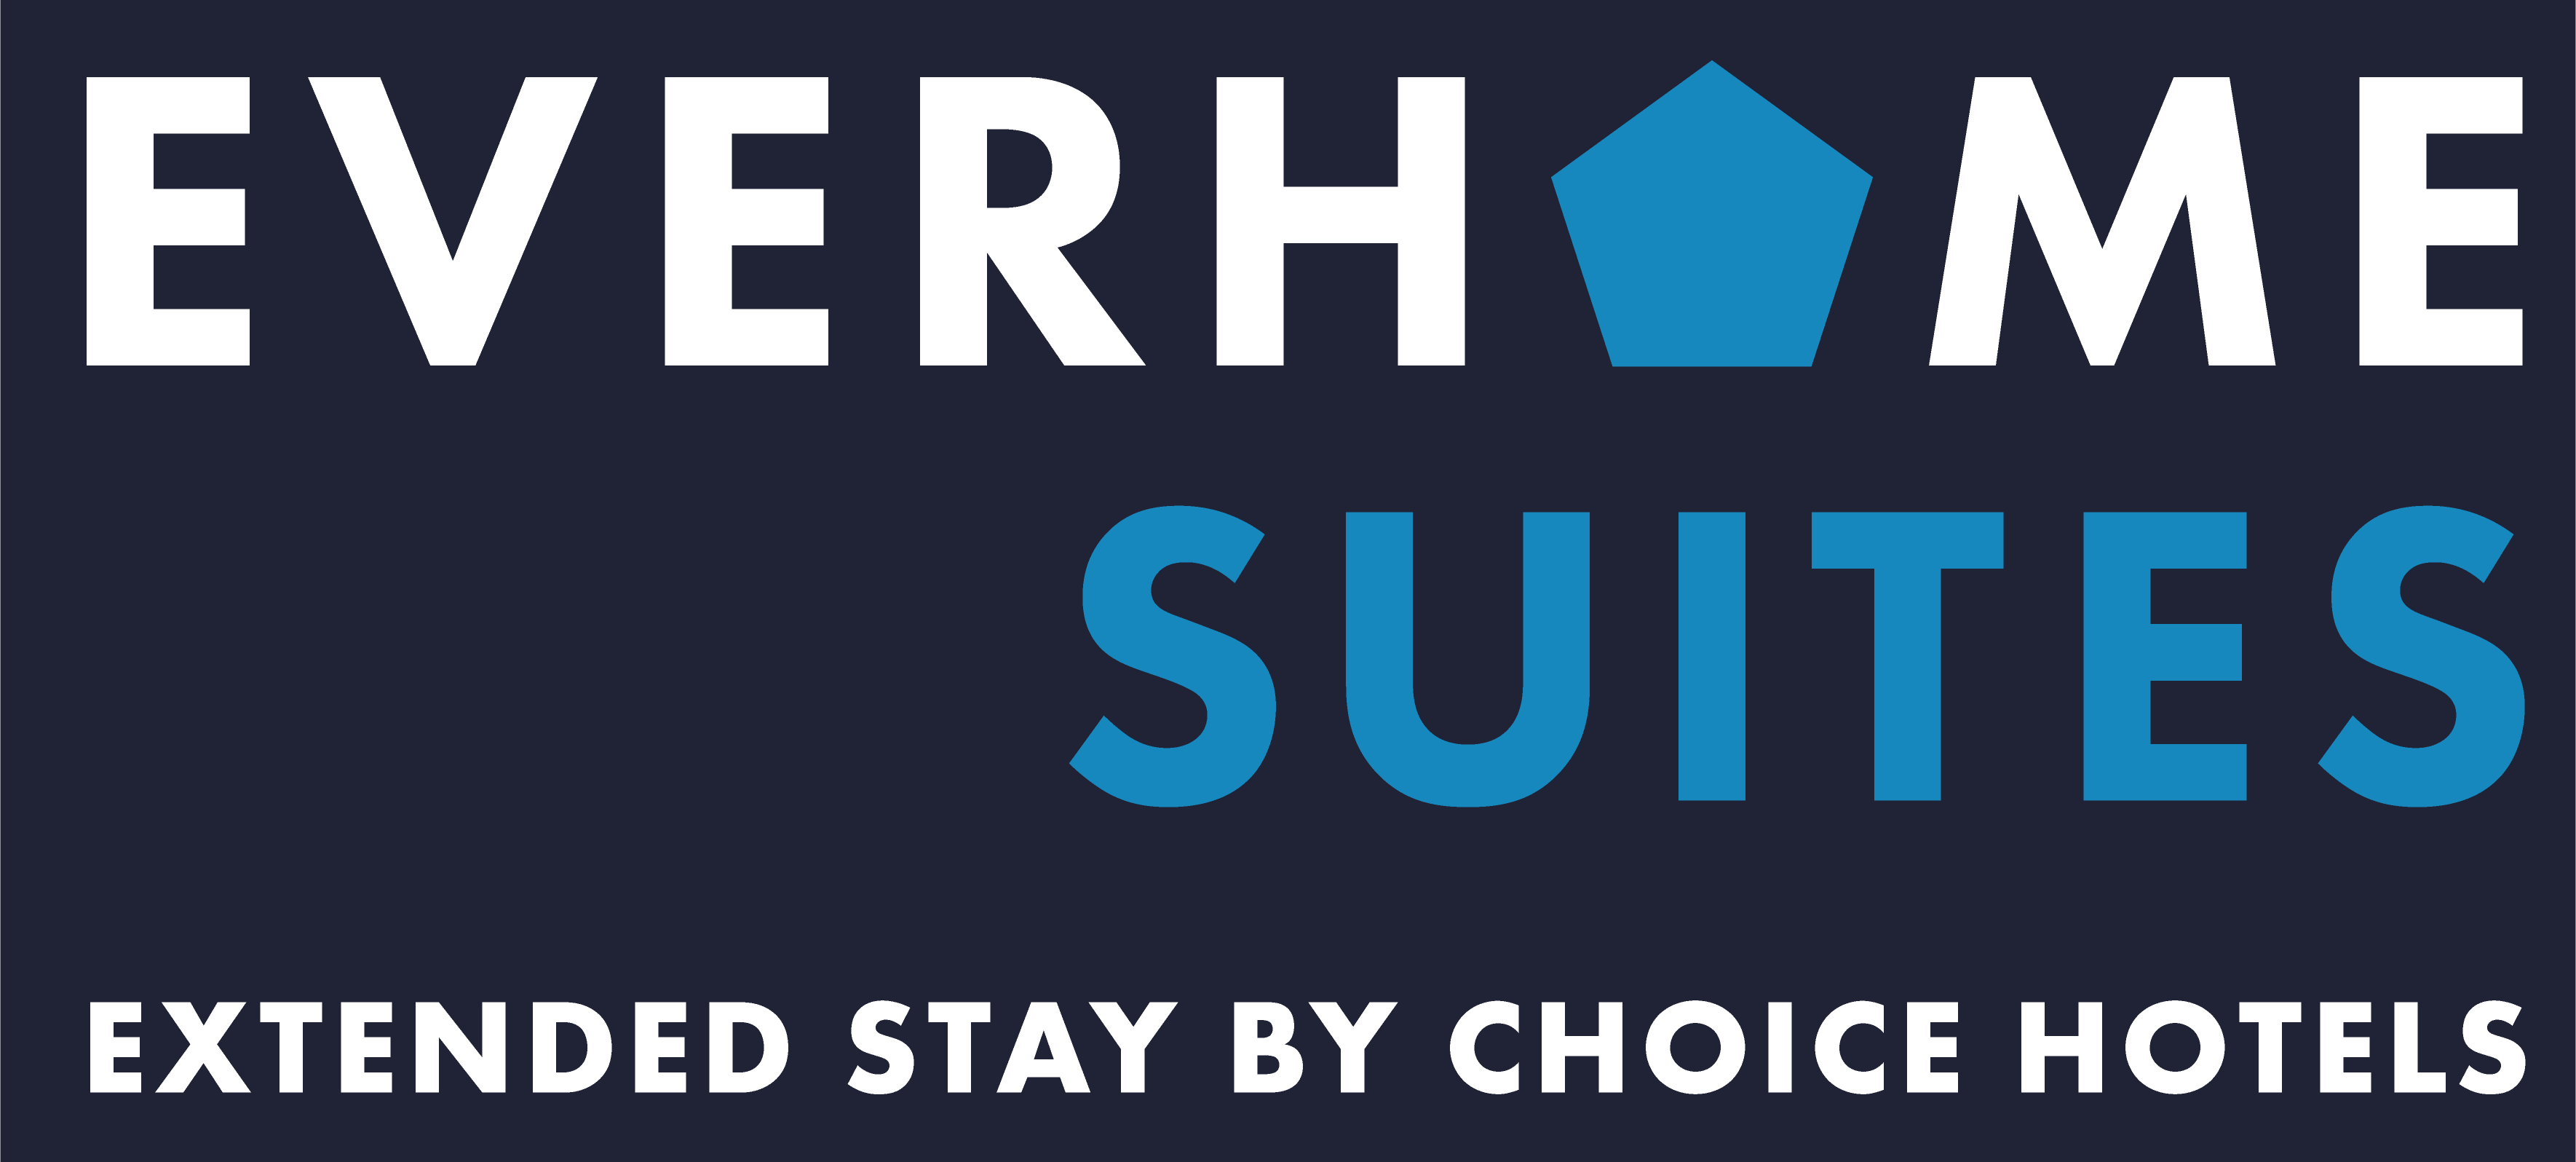 Everhome Suites Logo